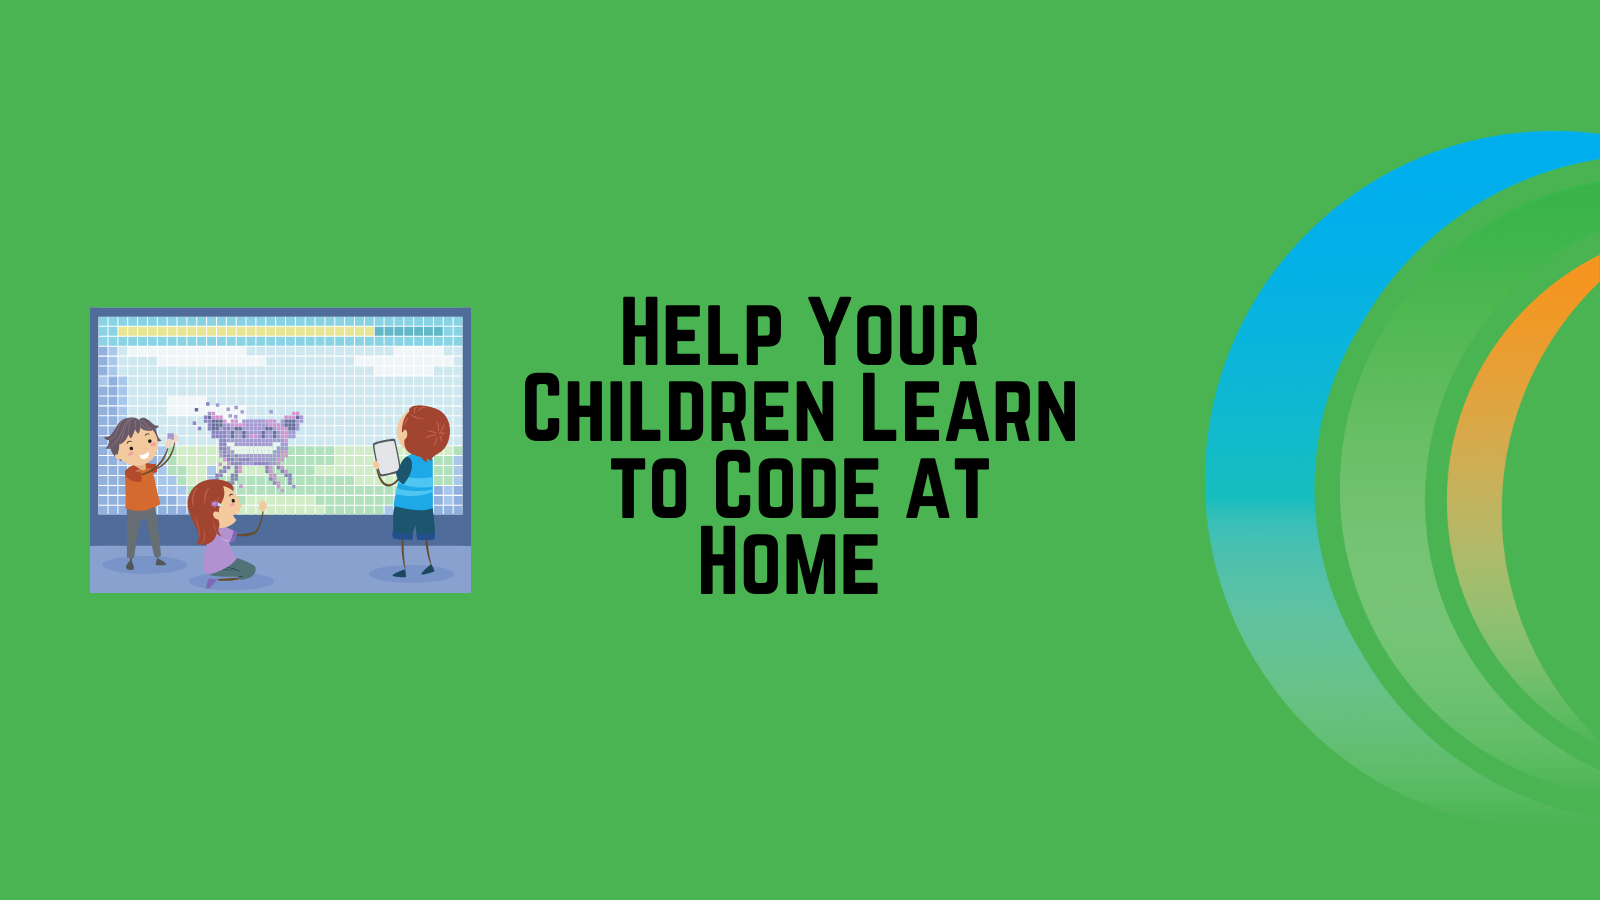 Help Your Children Learn to Code at Home